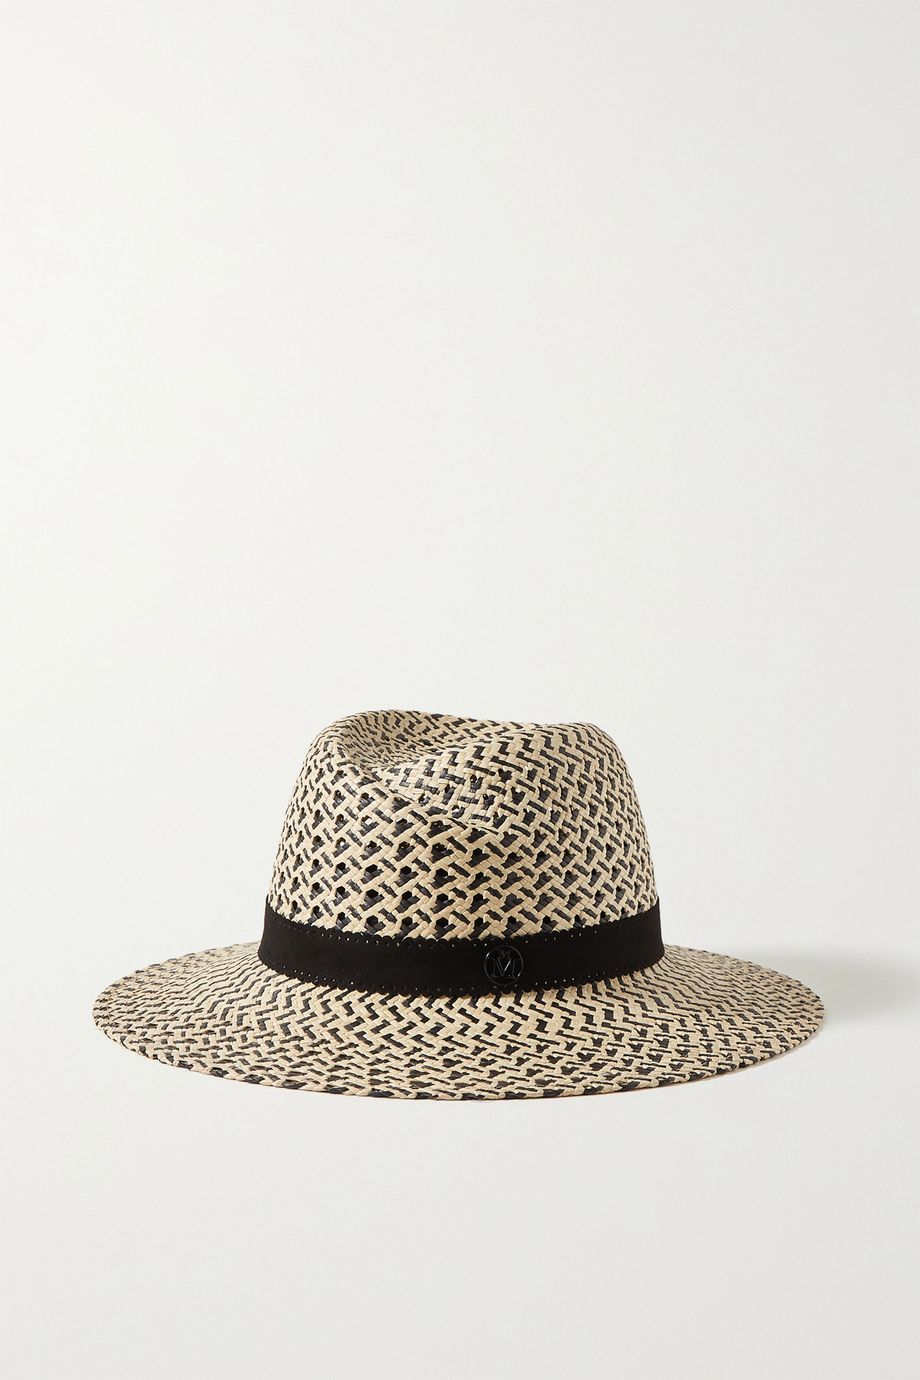 Maison Michel Virginie leather-trimmed two-tone straw hat